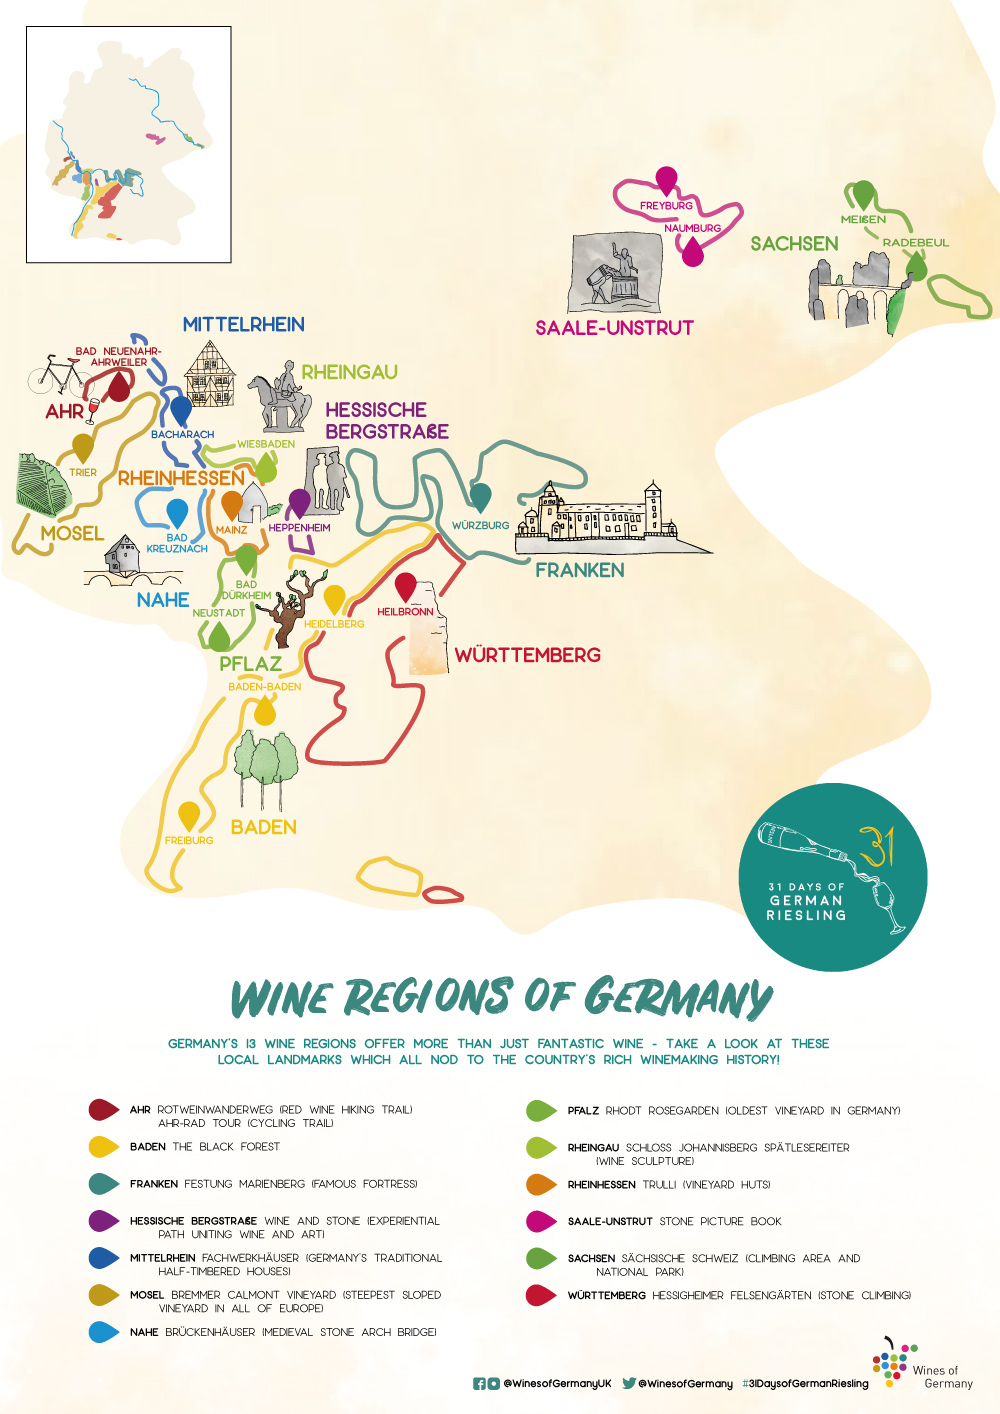 Where is Riesling from